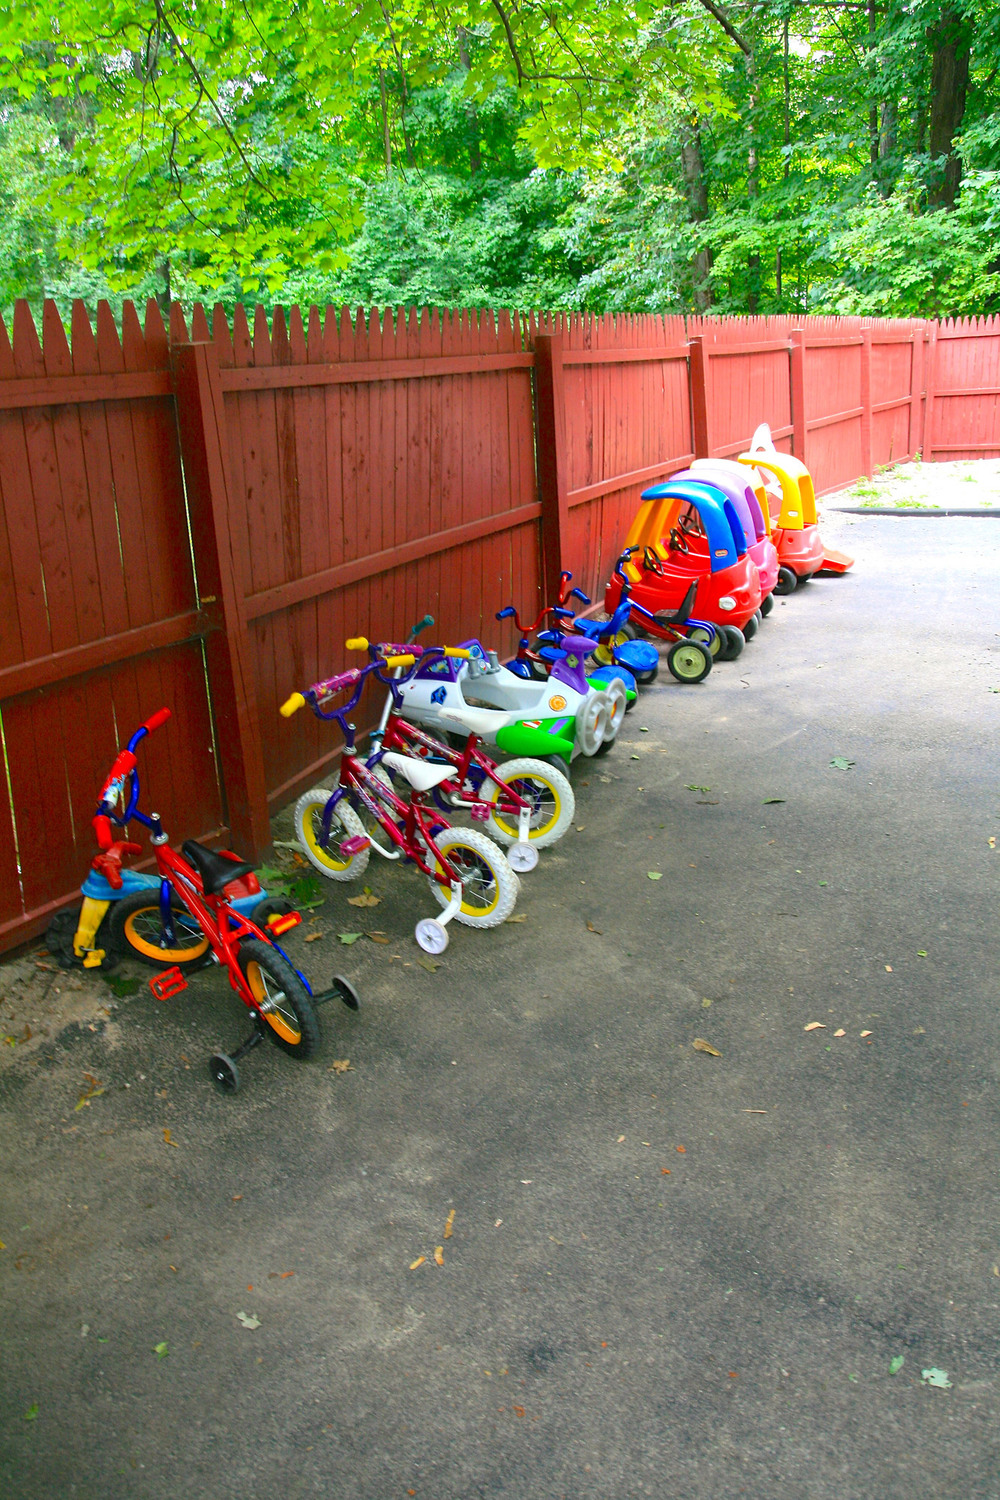 wee-play-childrens-center-outside-08.jpg